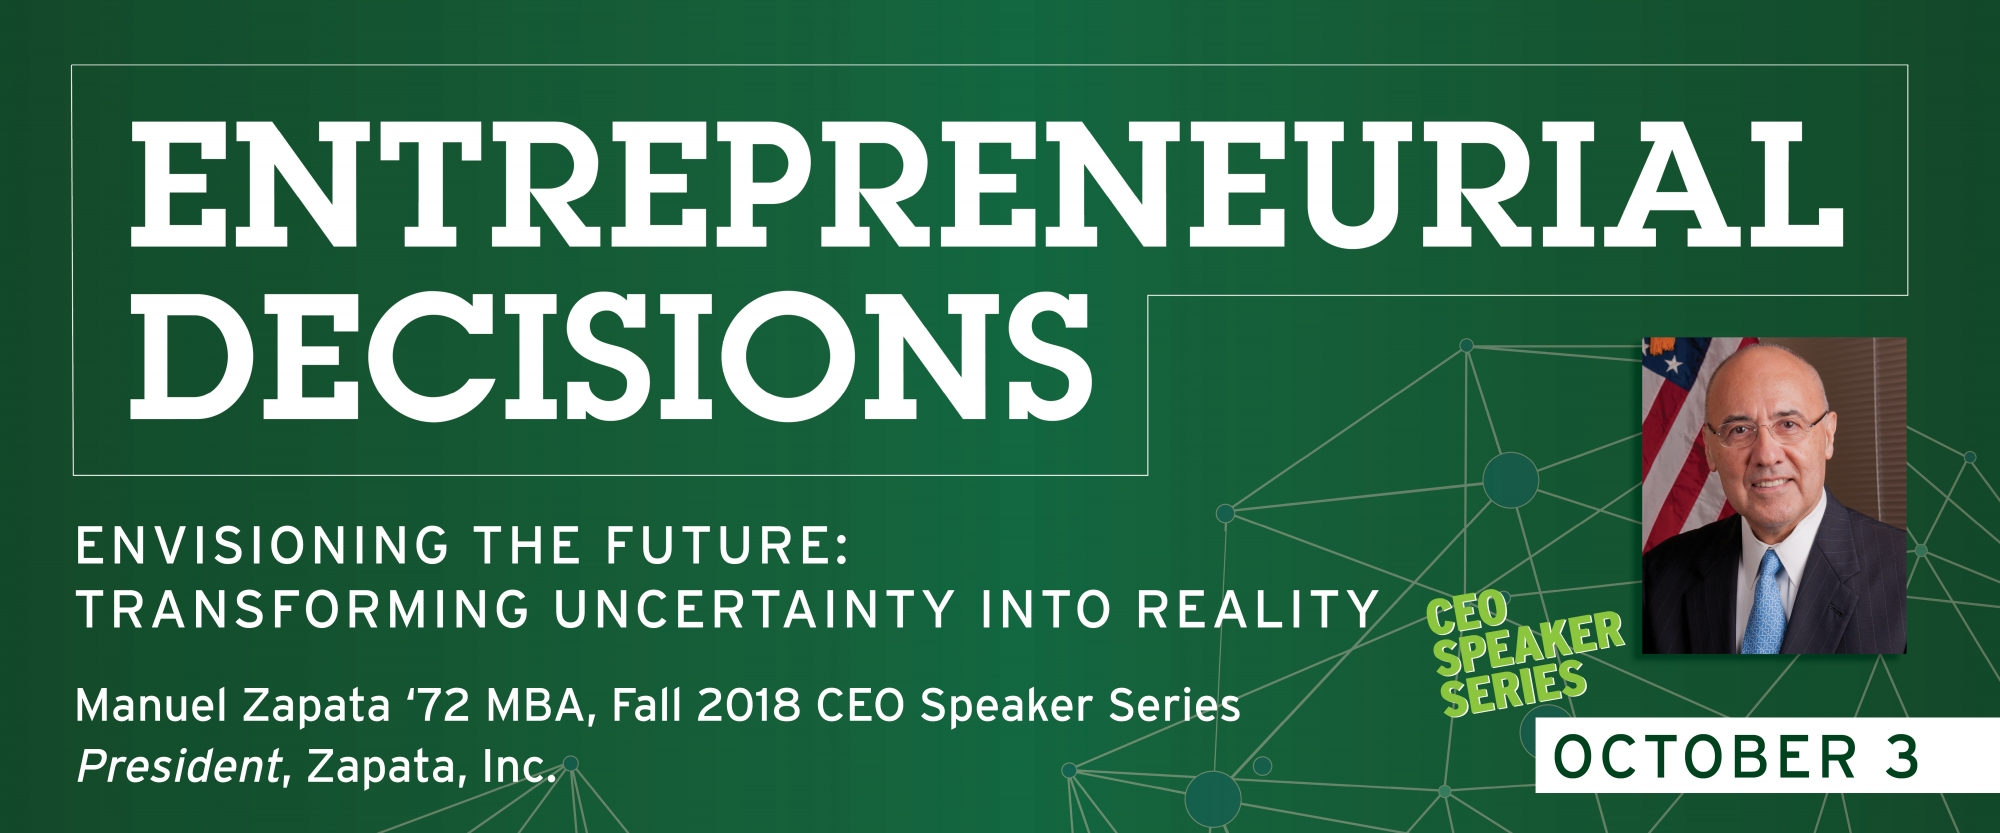 Entrepreneurial Decisions Series / CEO Speaker Series / October 3